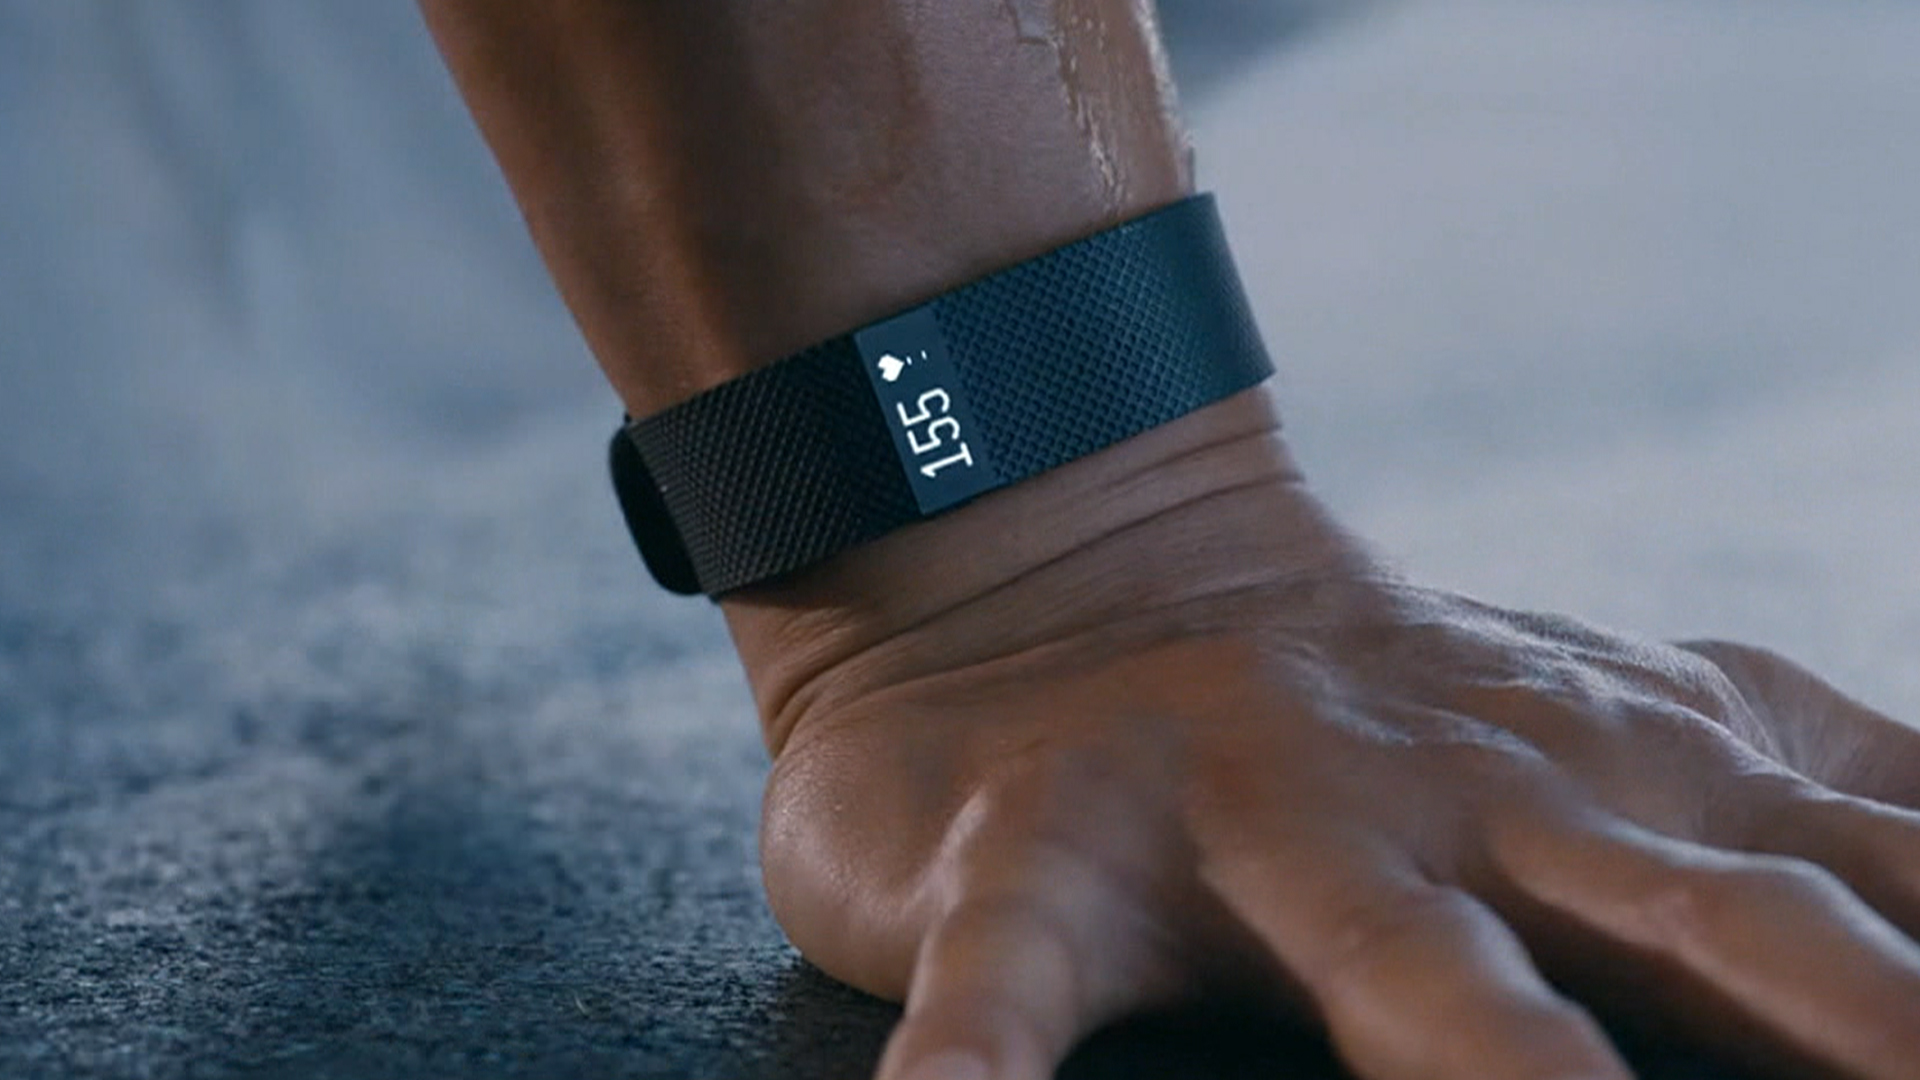 My Fitness Band Is Making Me Fat Users Complain Of Weight Gain With Trackers